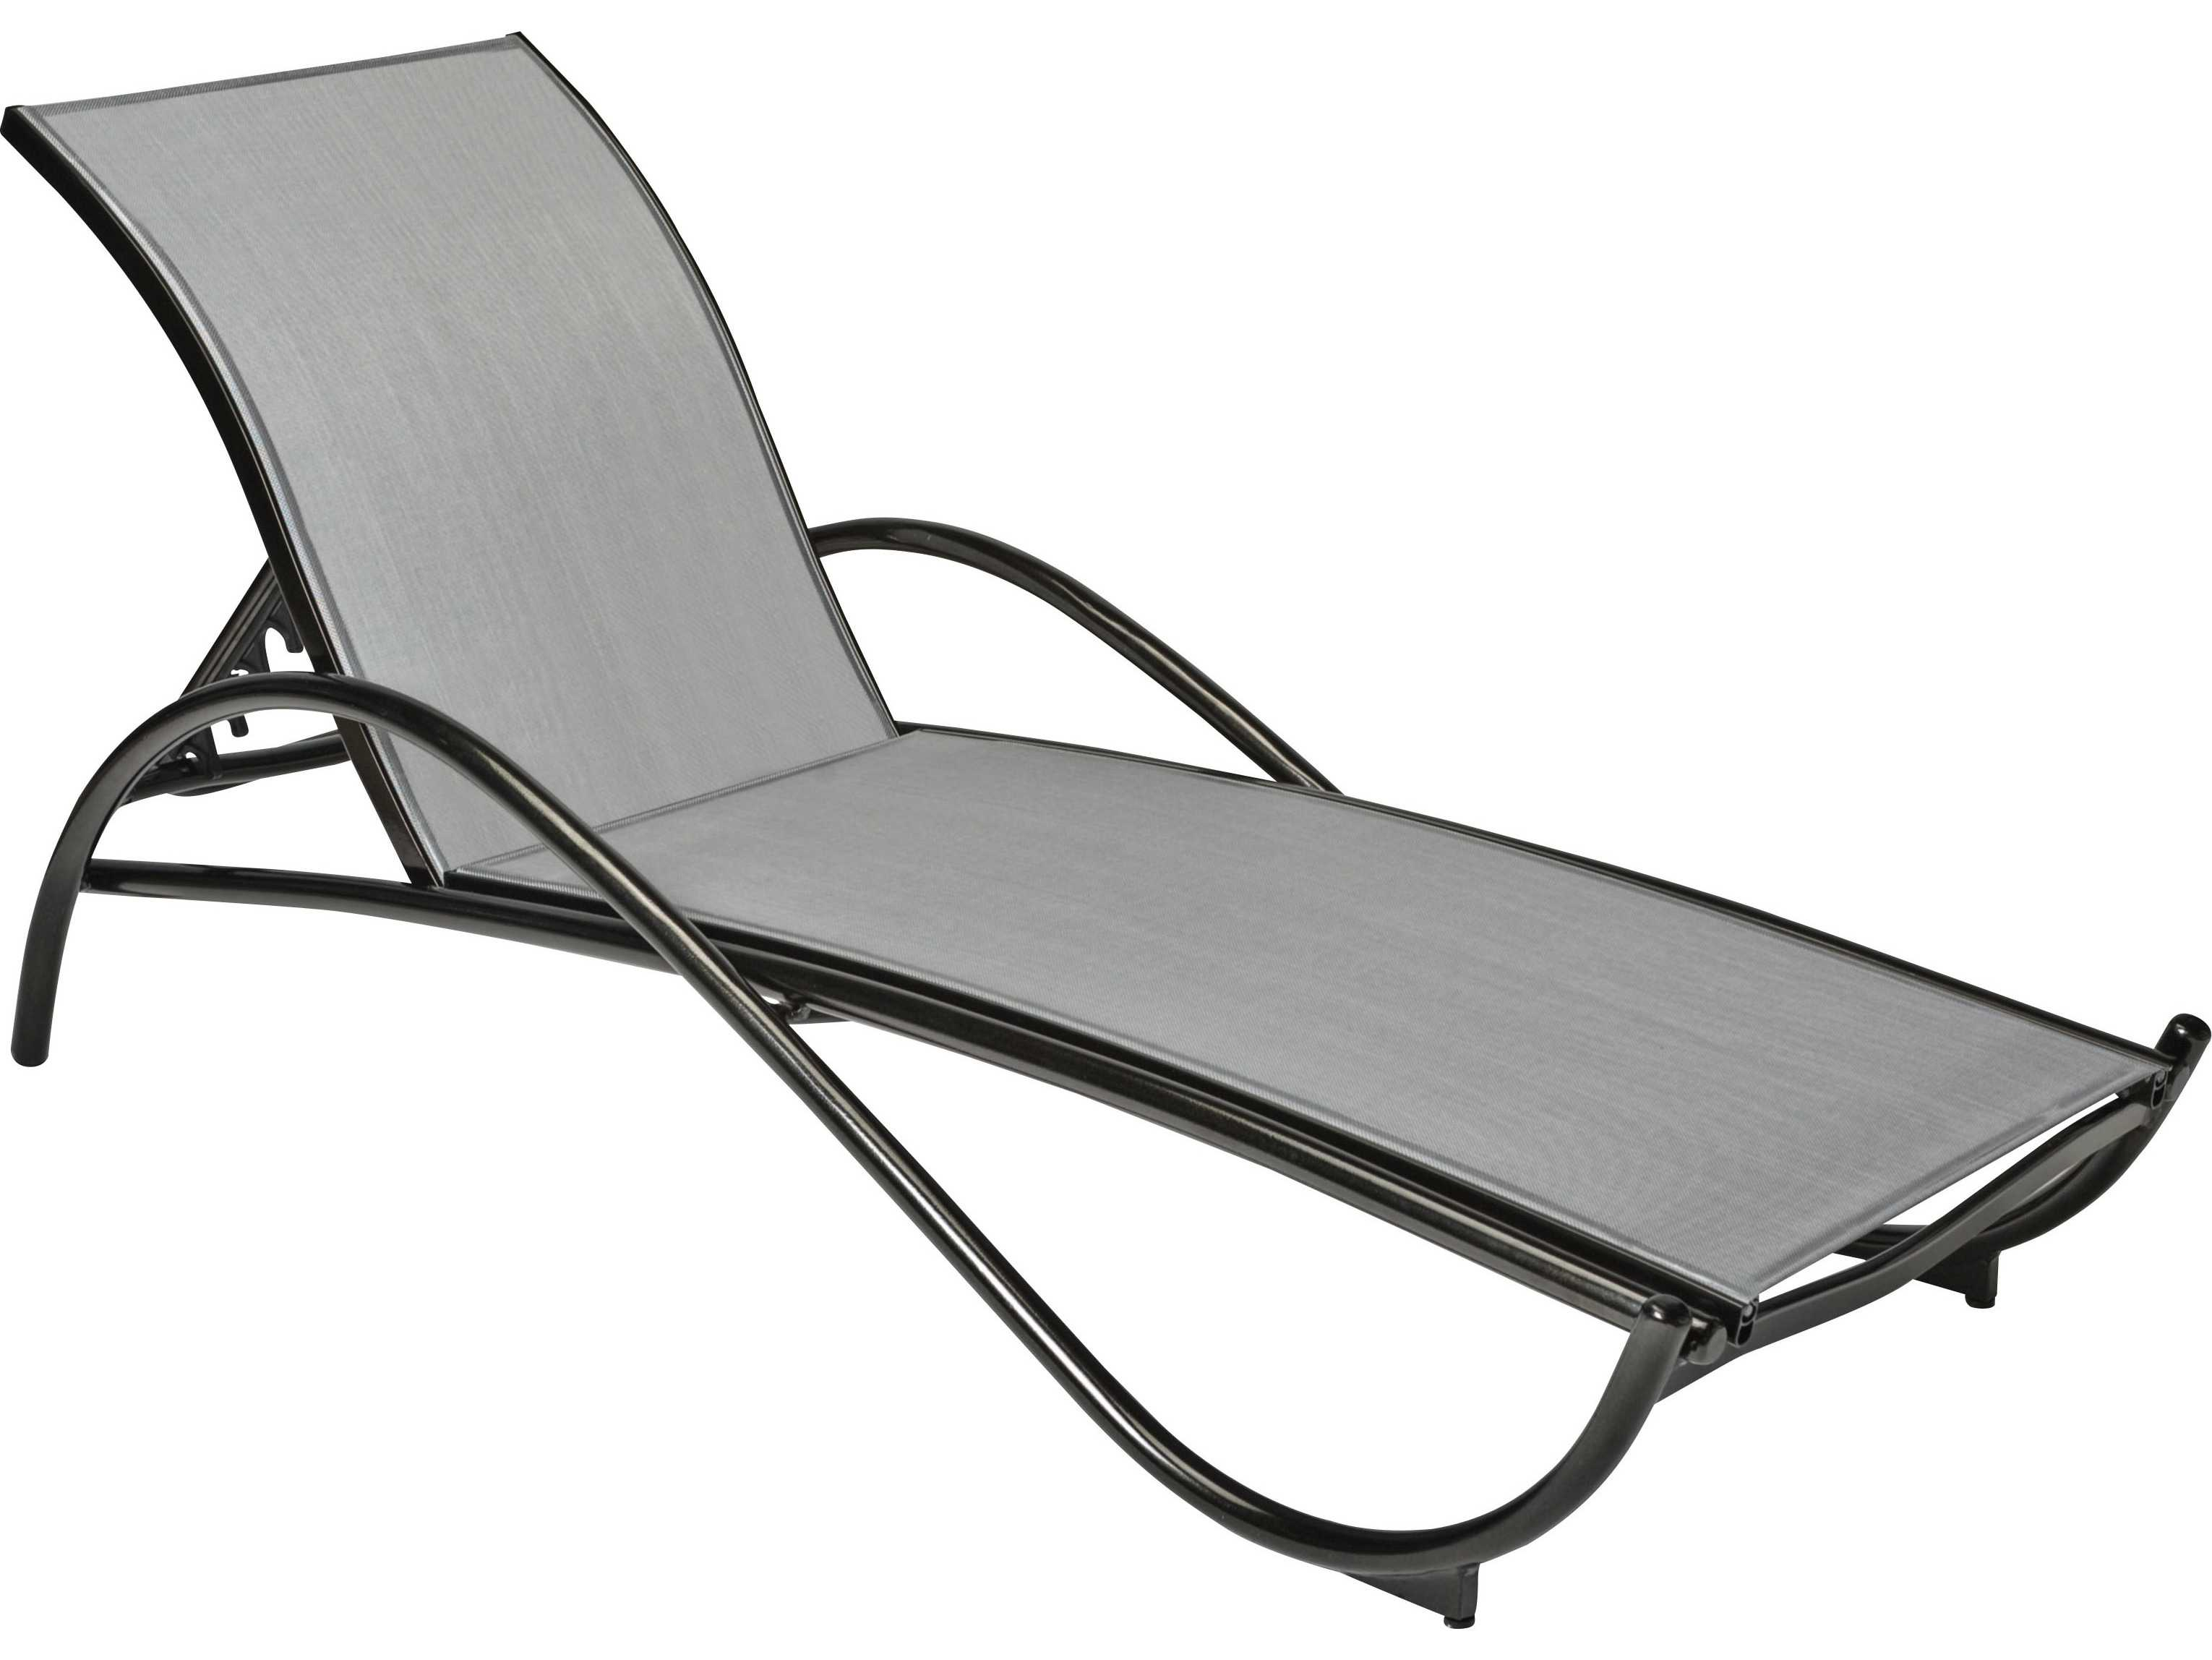 Plastic strap lounge chairs - Woodard Tribeca Aluminum Stackable Chaise Lounge List Price 899 00 Free Shipping From 584 35